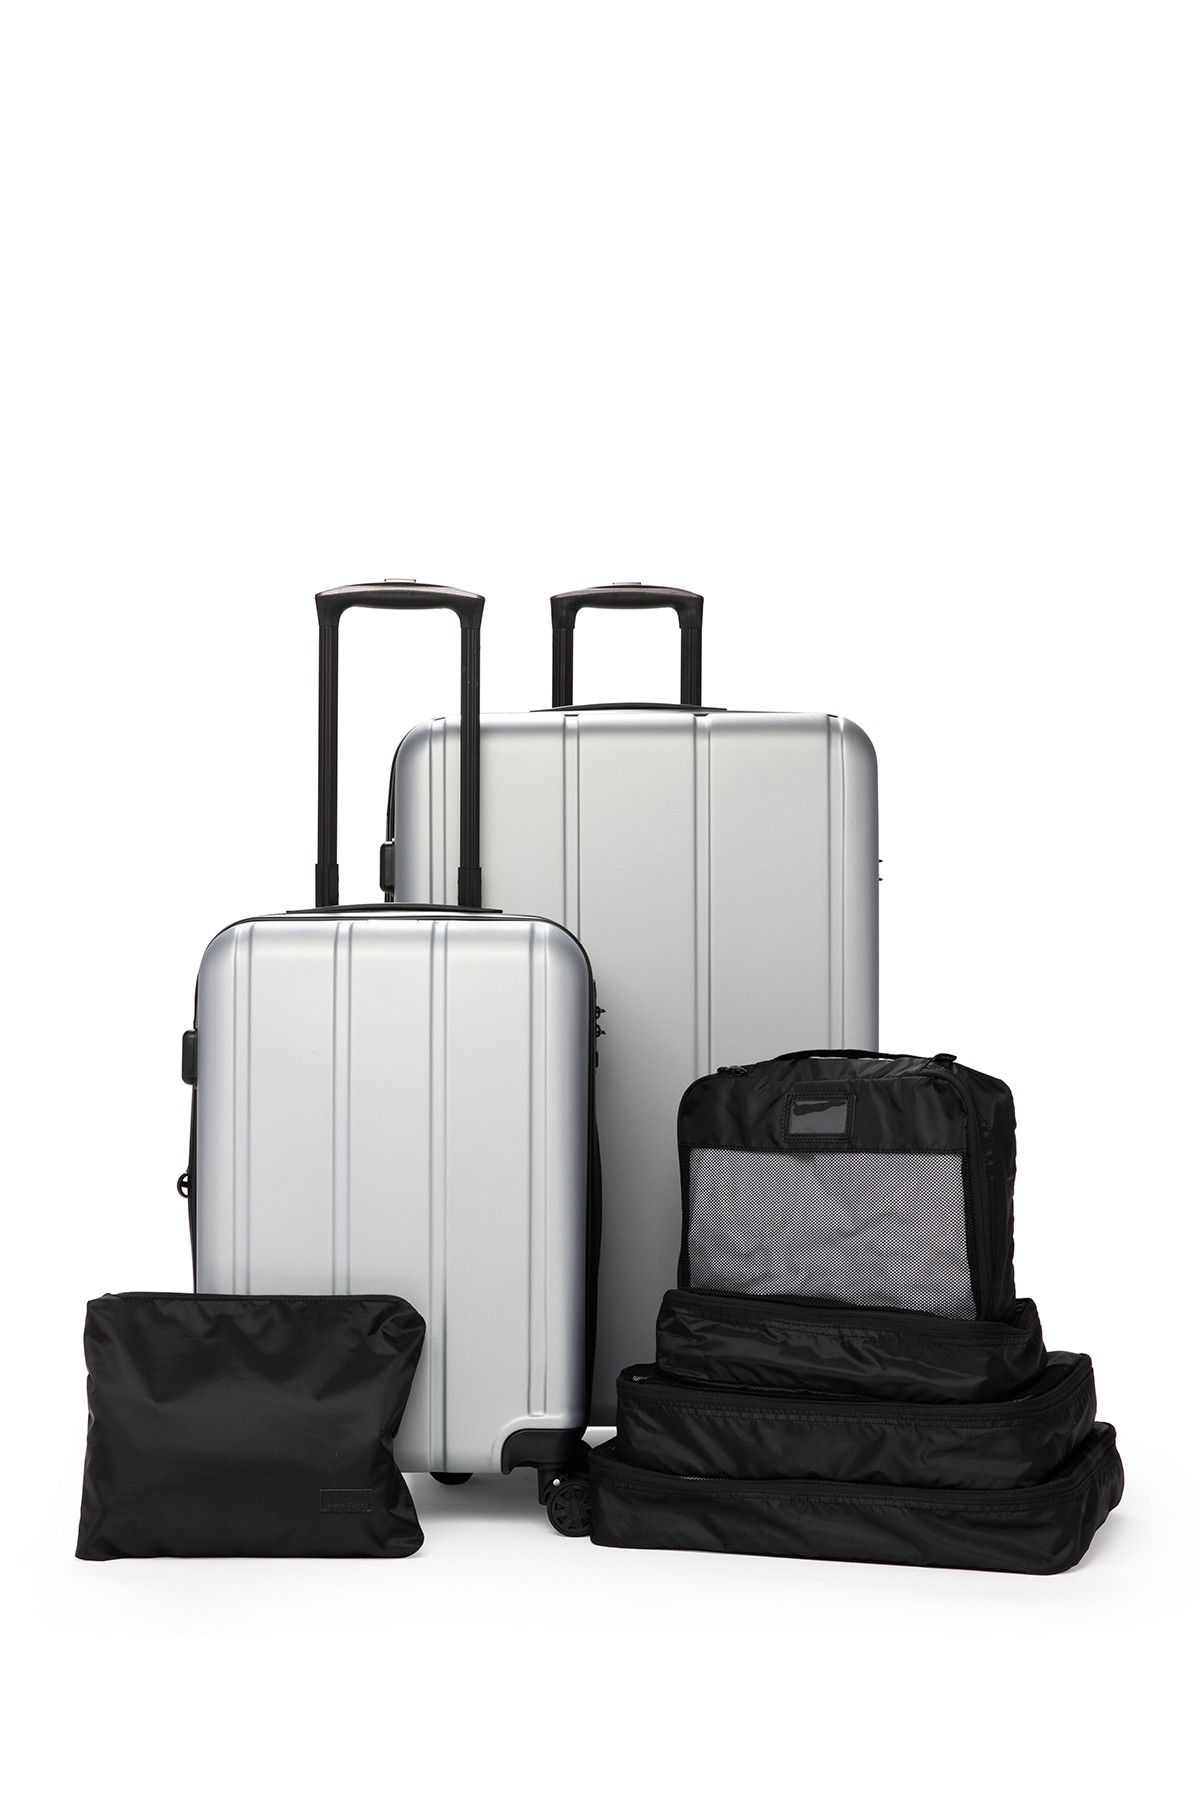 d9df093bf CALPAK LUGGAGE - Danton 7-Piece Luggage & Packing Cubes Set is now 52% off.  Free Shipping on orders over $100.